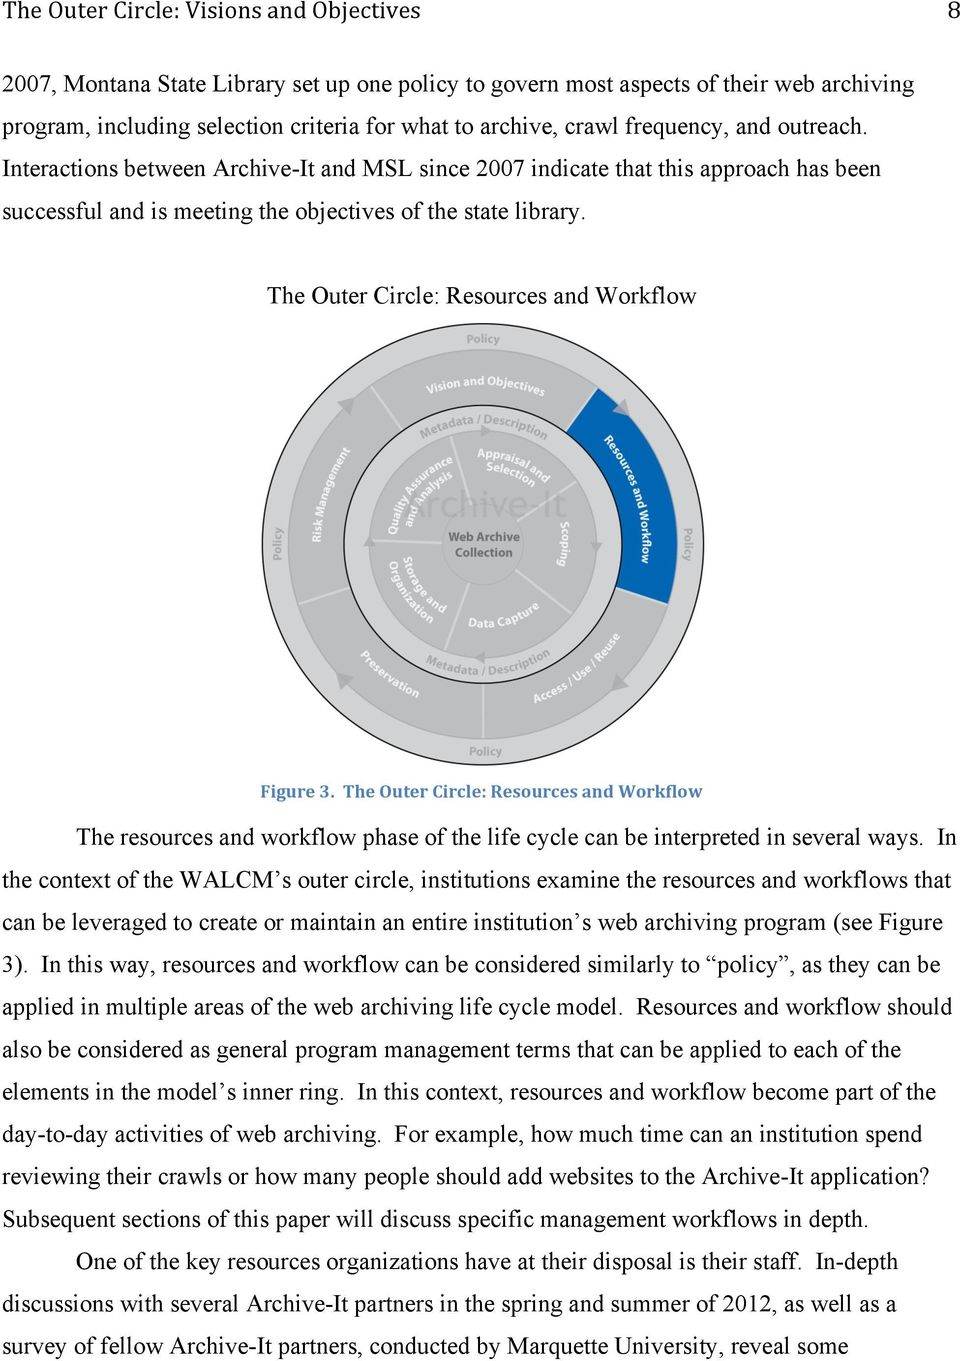 The Outer Circle: Resources and Workflow Figure 3. The Outer Circle: Resources and Workflow The resources and workflow phase of the life cycle can be interpreted in several ways.